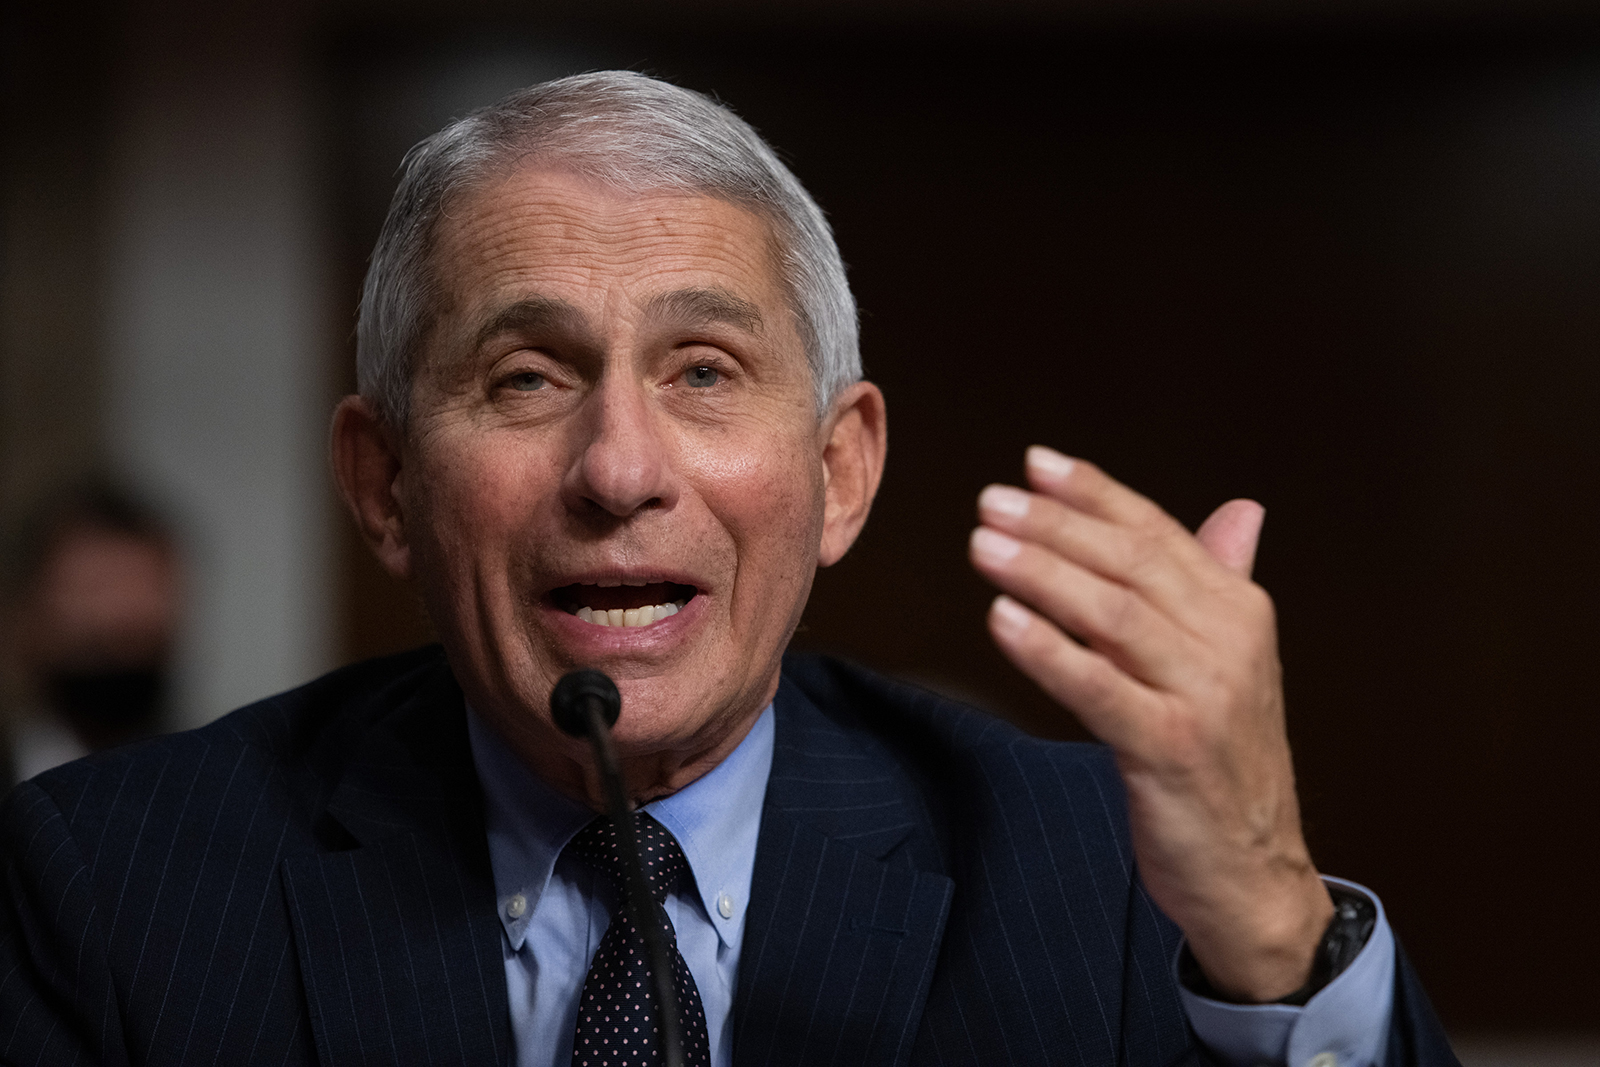 National Institute of Allergy and Infectious Diseases Director Anthony Fauci on September 23.